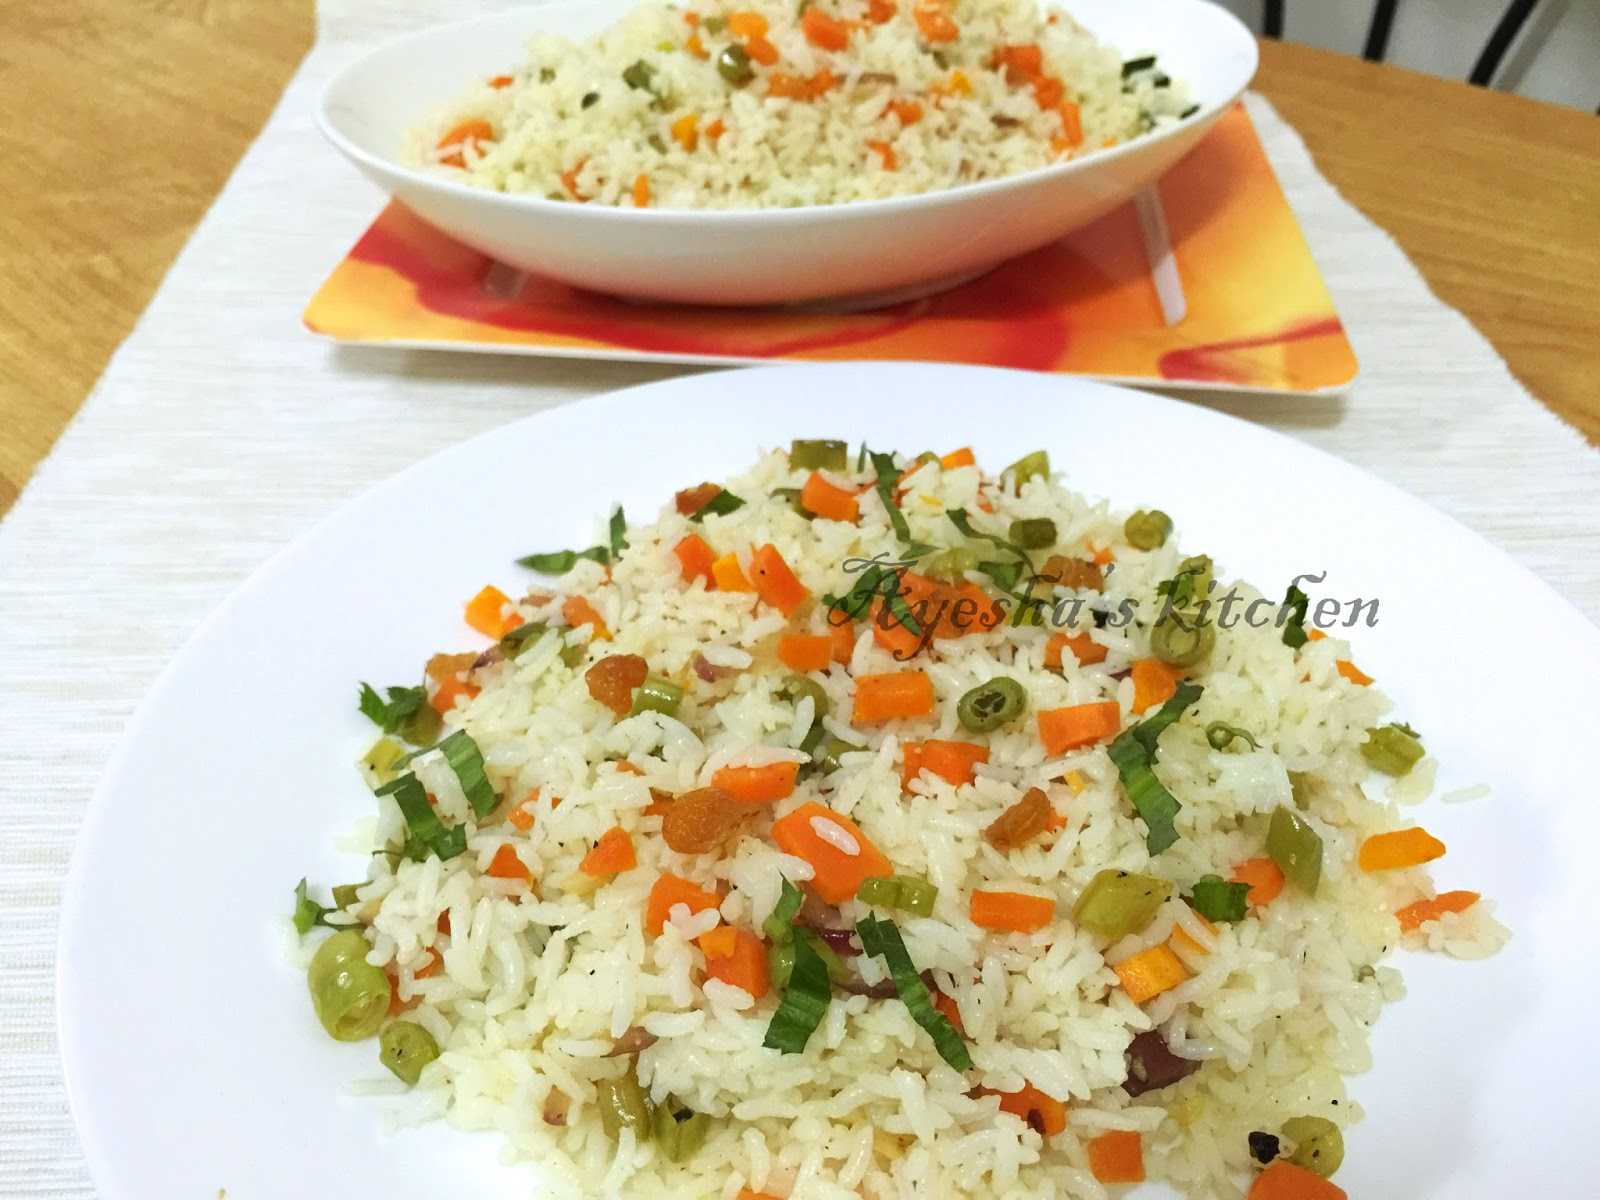 Fried rice recipe vegetable fried rice vegetable fried rice ccuart Choice Image